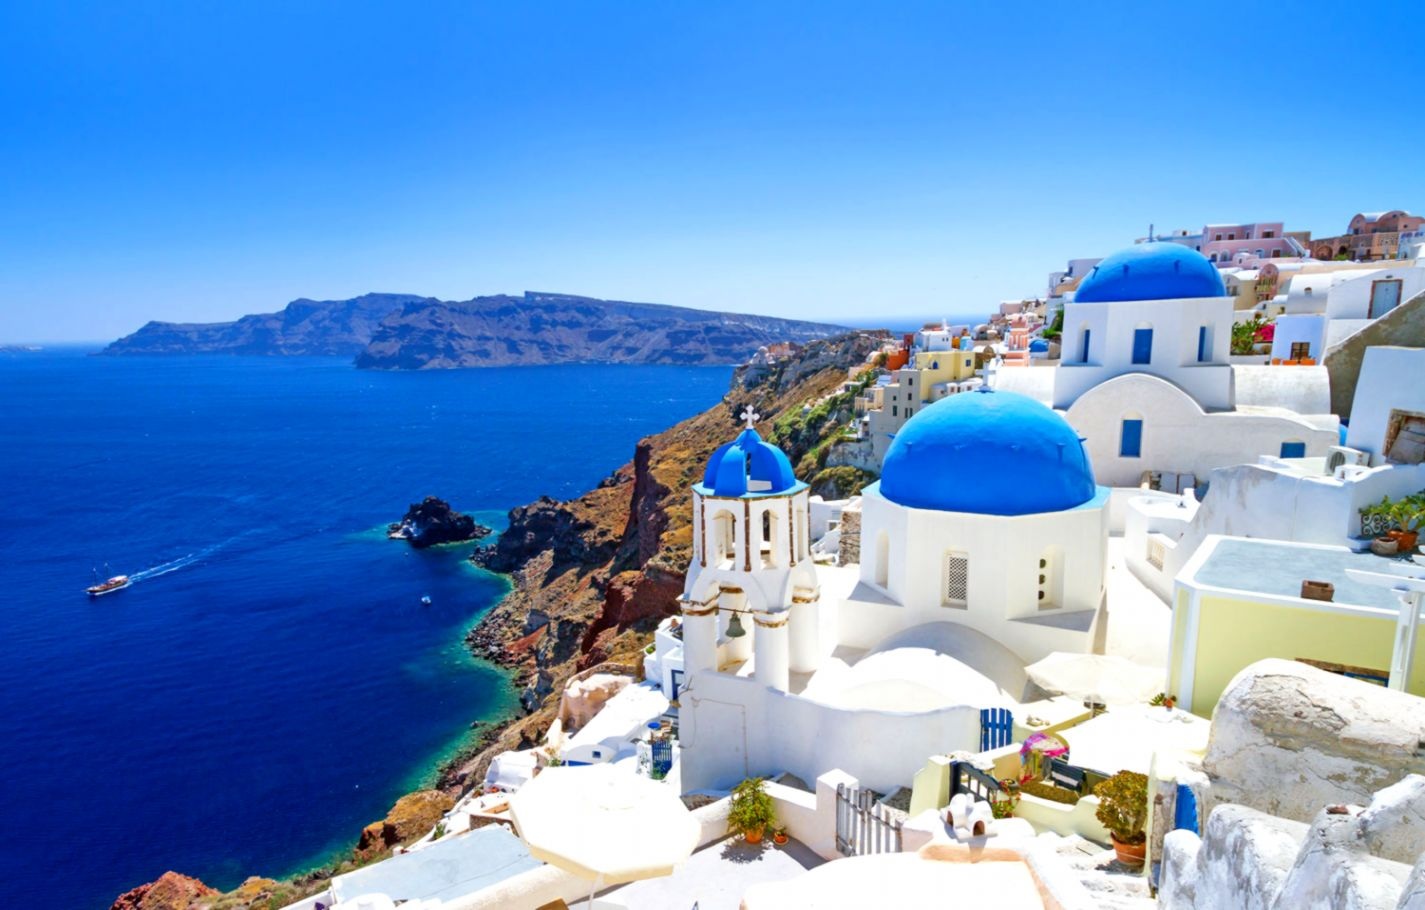 Greek Island Images Spot Wallpapers